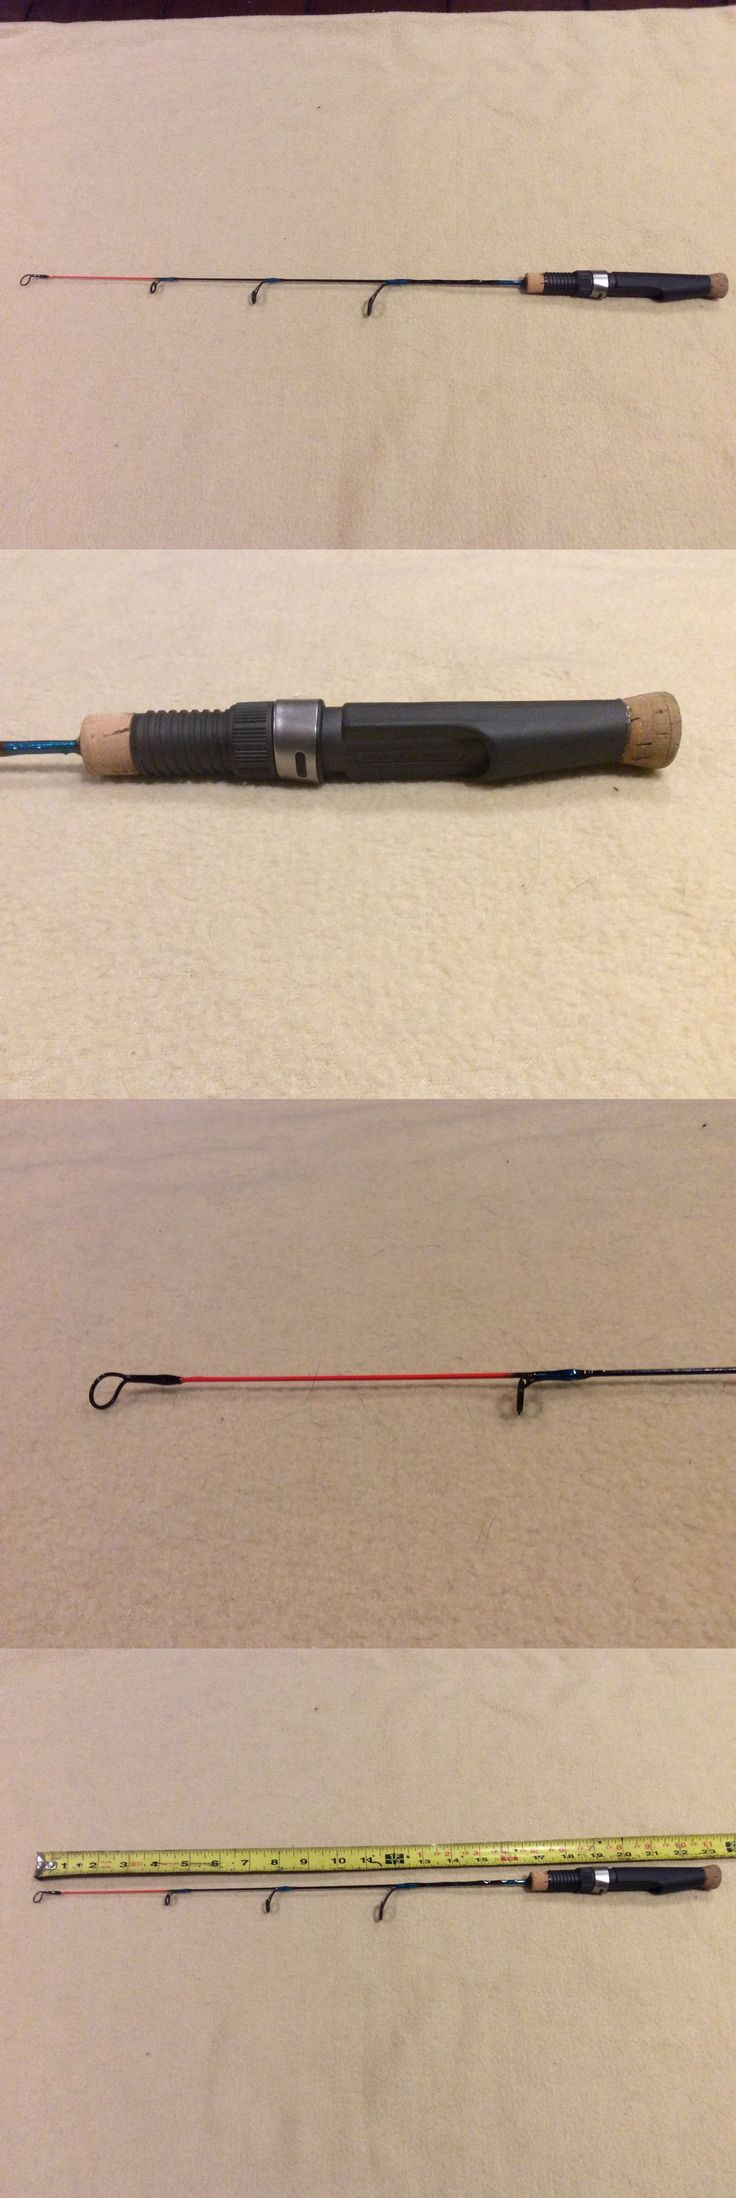 Ice Fishing Rods 179947: Custom Ice Fishing Rod -> BUY IT NOW ONLY: $54.98 on eBay!